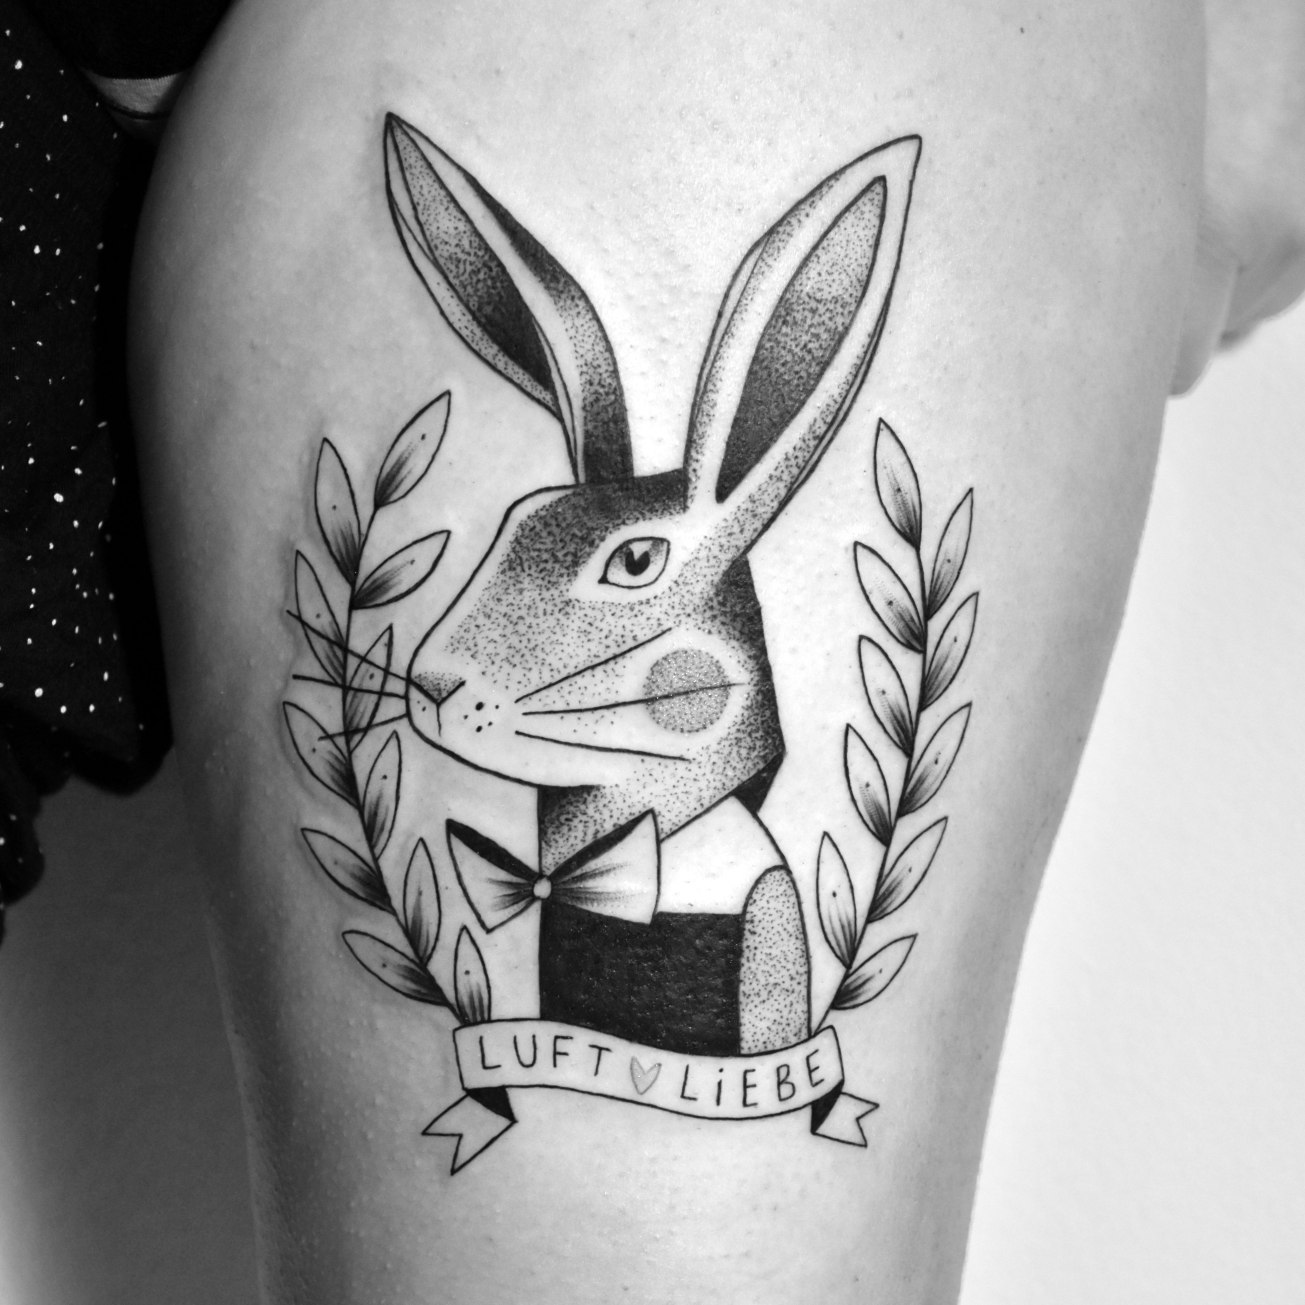 miriam_frank_tattoo_rabbit